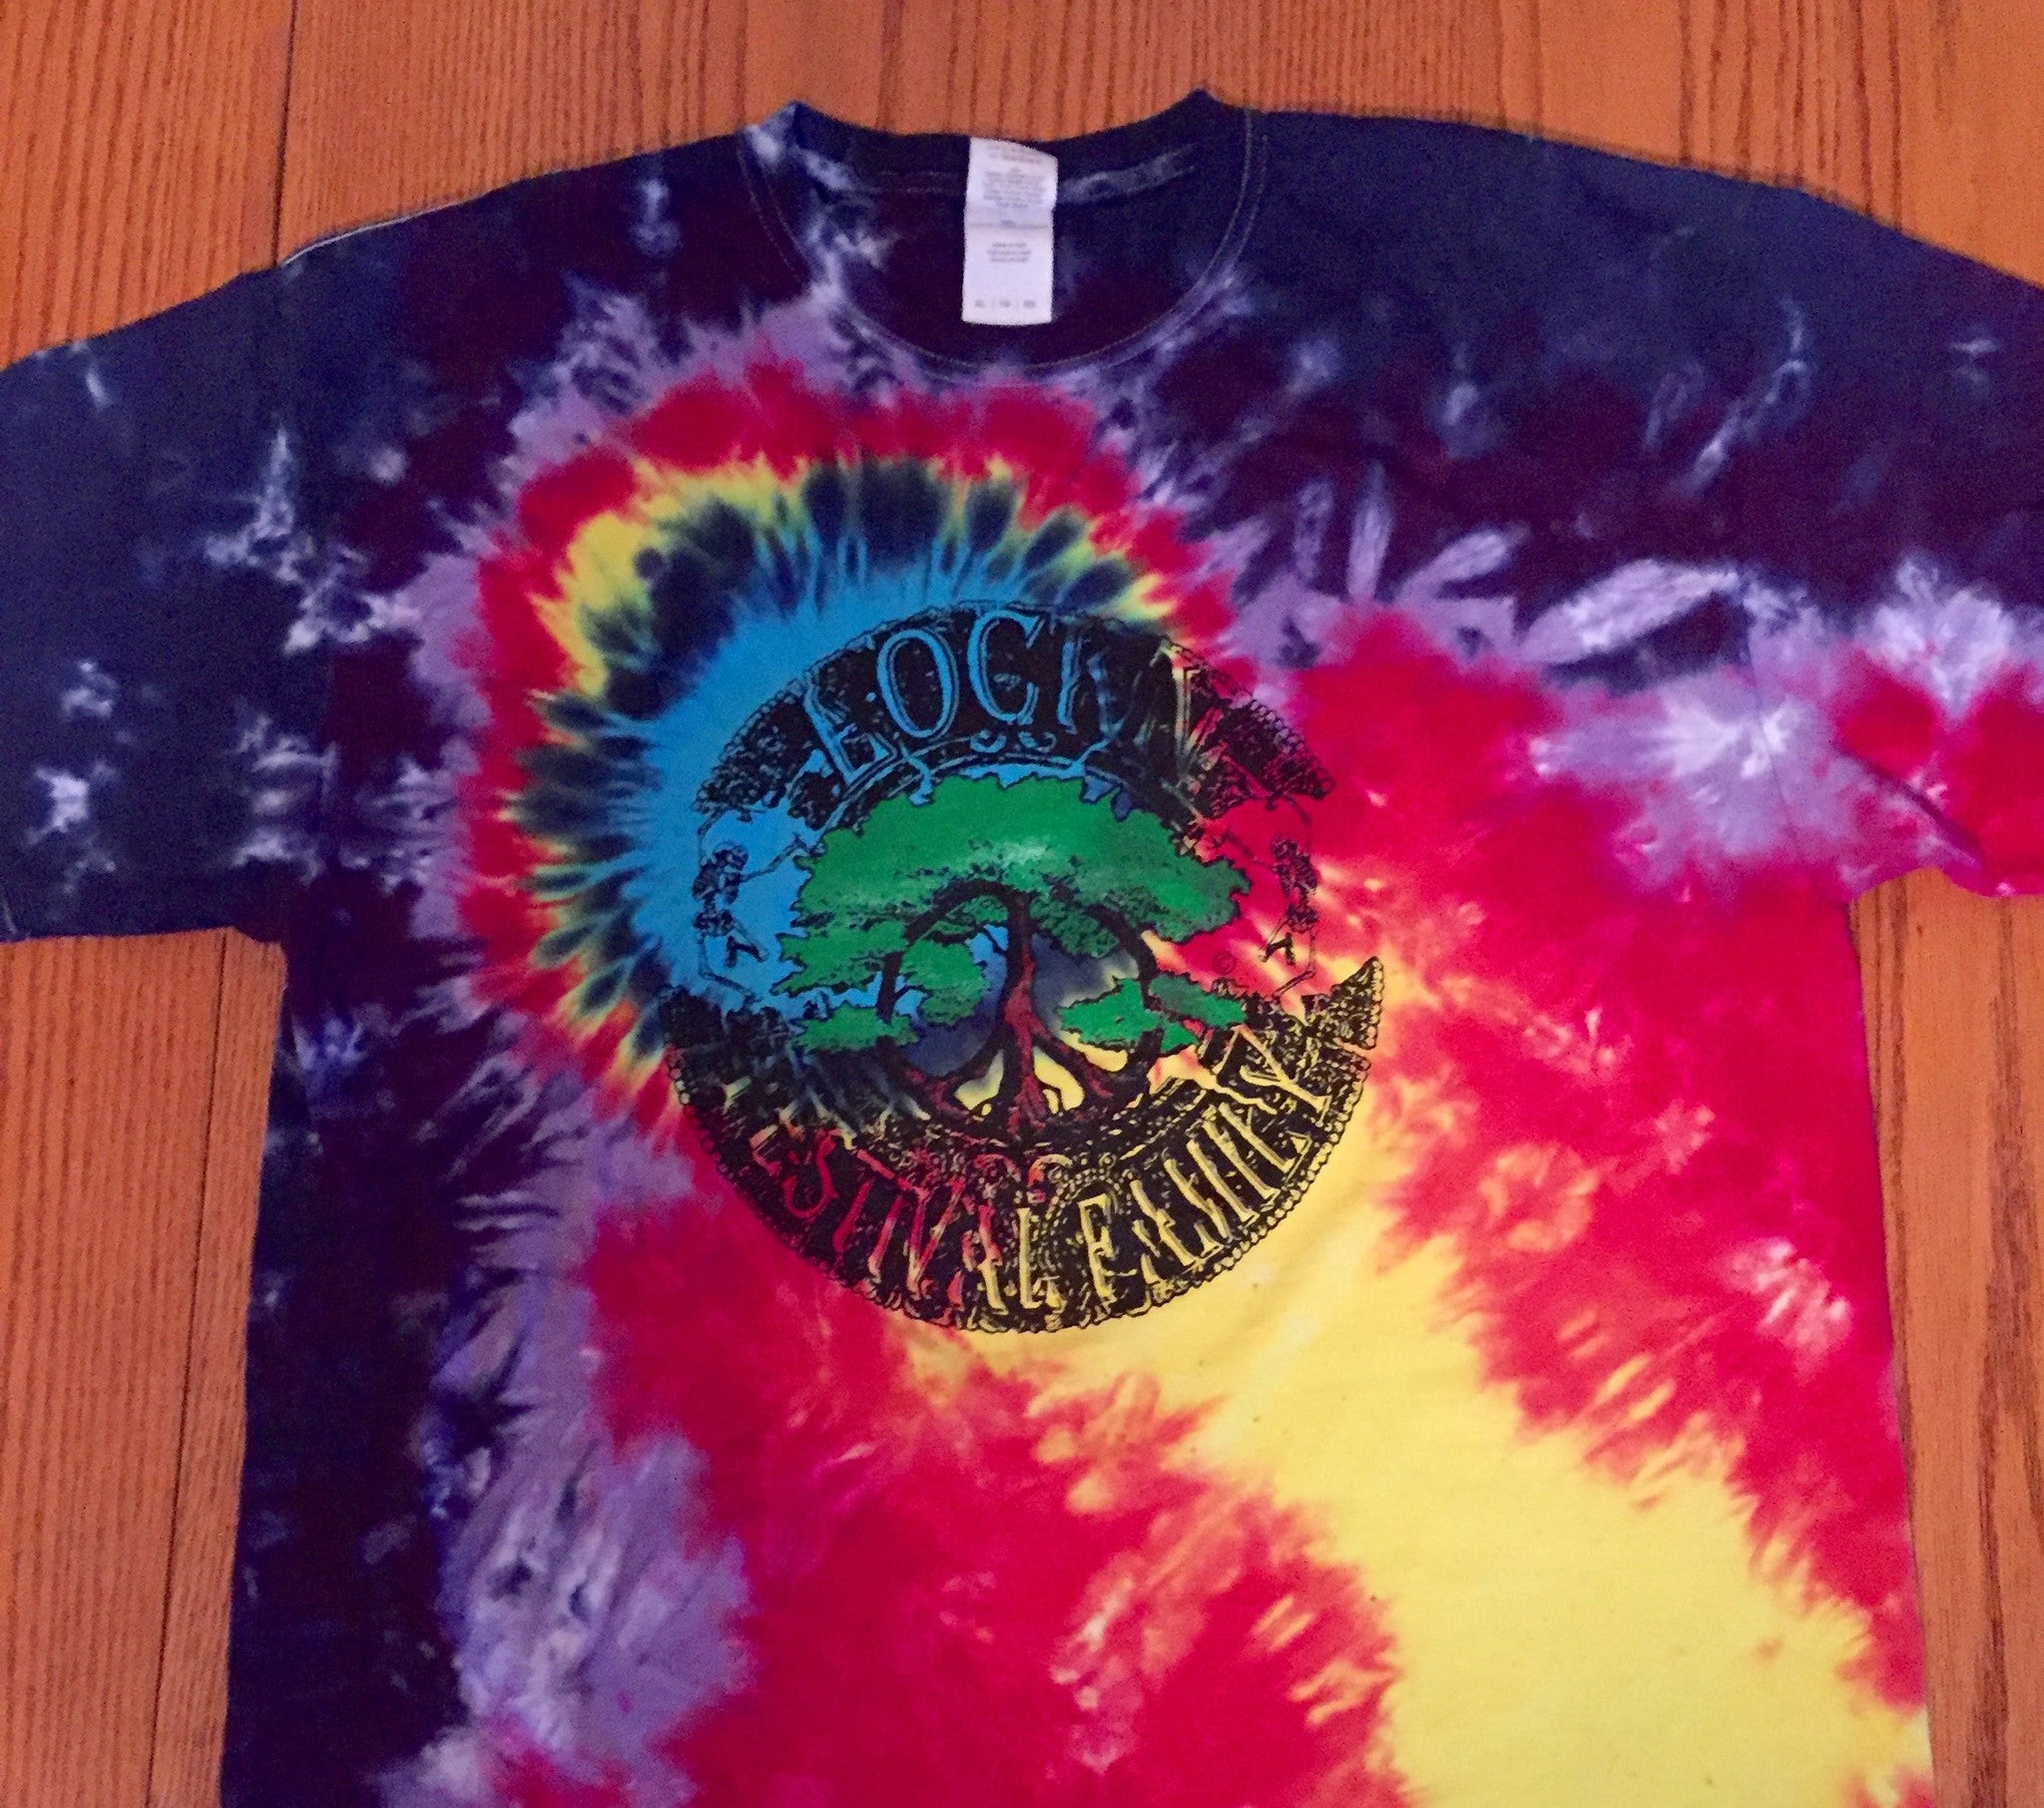 Lockn' Festival Family Tie Dye T Shirt - 2 Sided Print